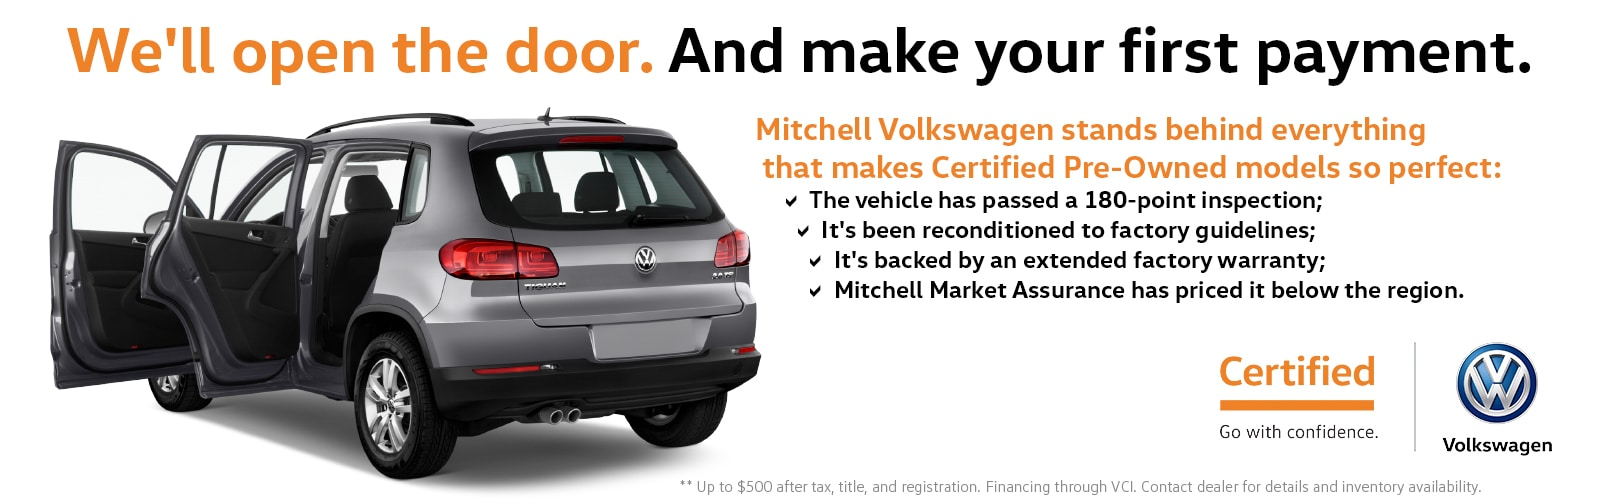 sale volkswagen oh in ct used vehicles for dealers columbus suvs cars htm